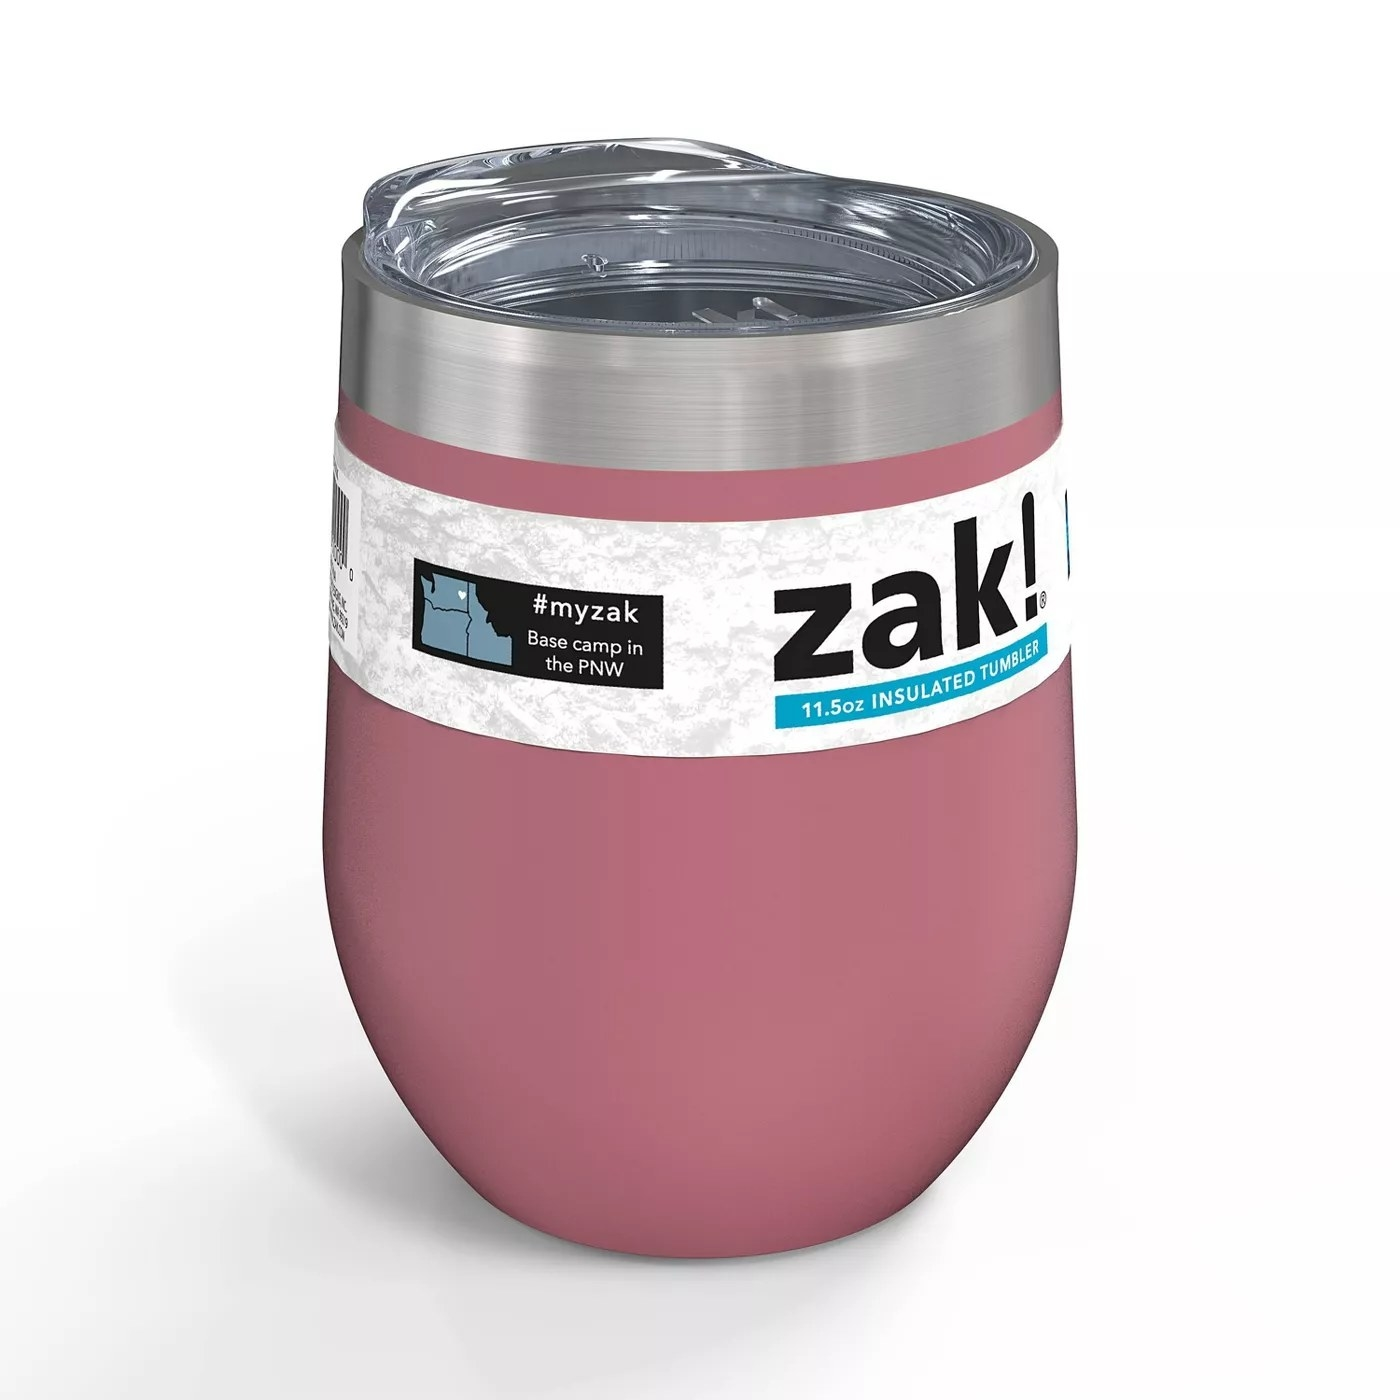 A pink, insulated tumbler with a cover